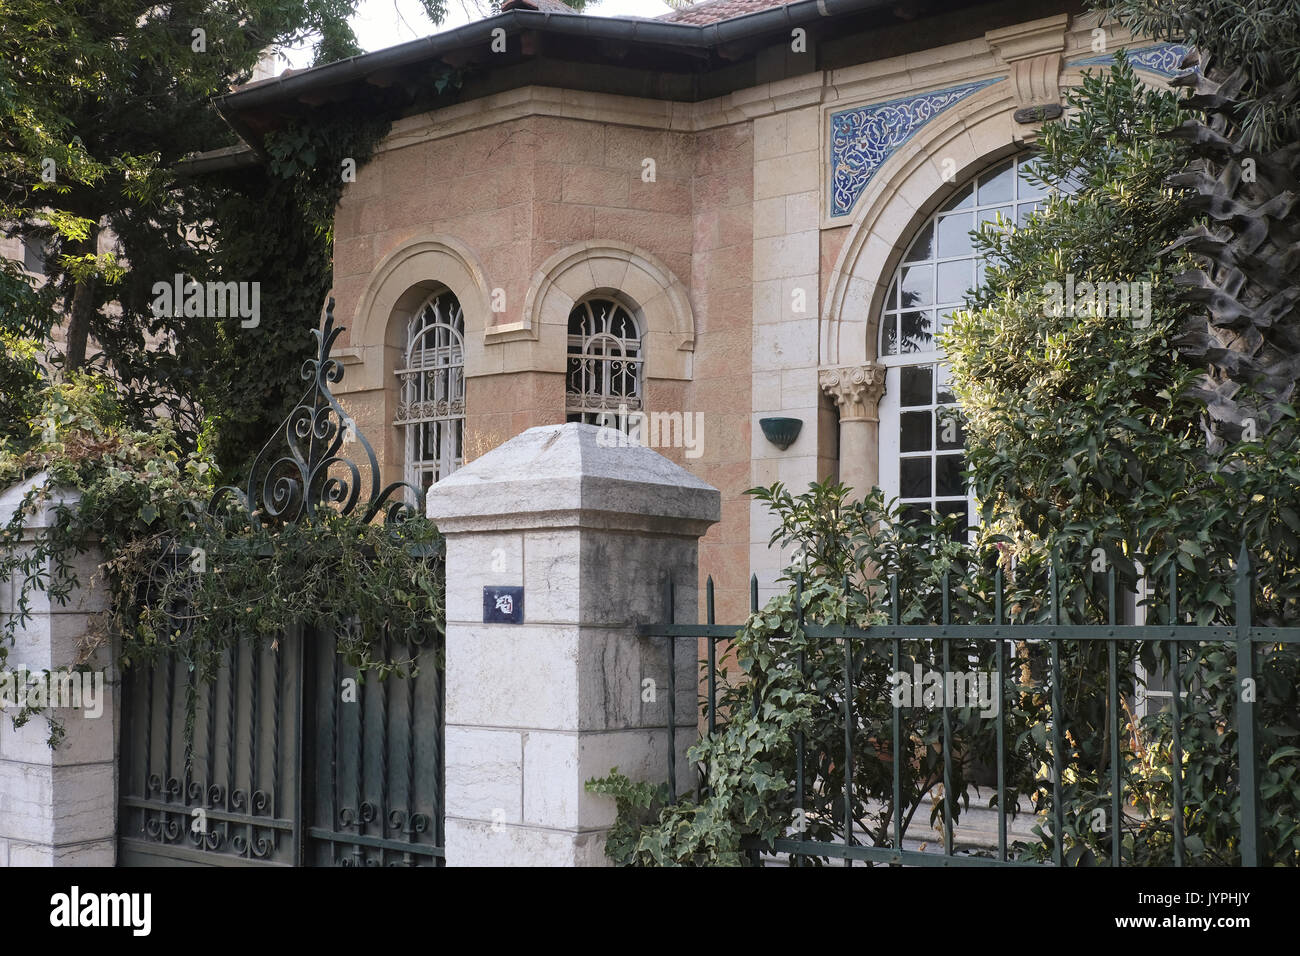 Facade of the former Arab villa of Dajani family located in 24 Hatzfira street in Katamon or Qatamon neighborhood established in the early 20th century and was populated by wealthy Christian Arabs who fled during the 1948 Israel War of Independence. West Jerusalem Israel - Stock Image